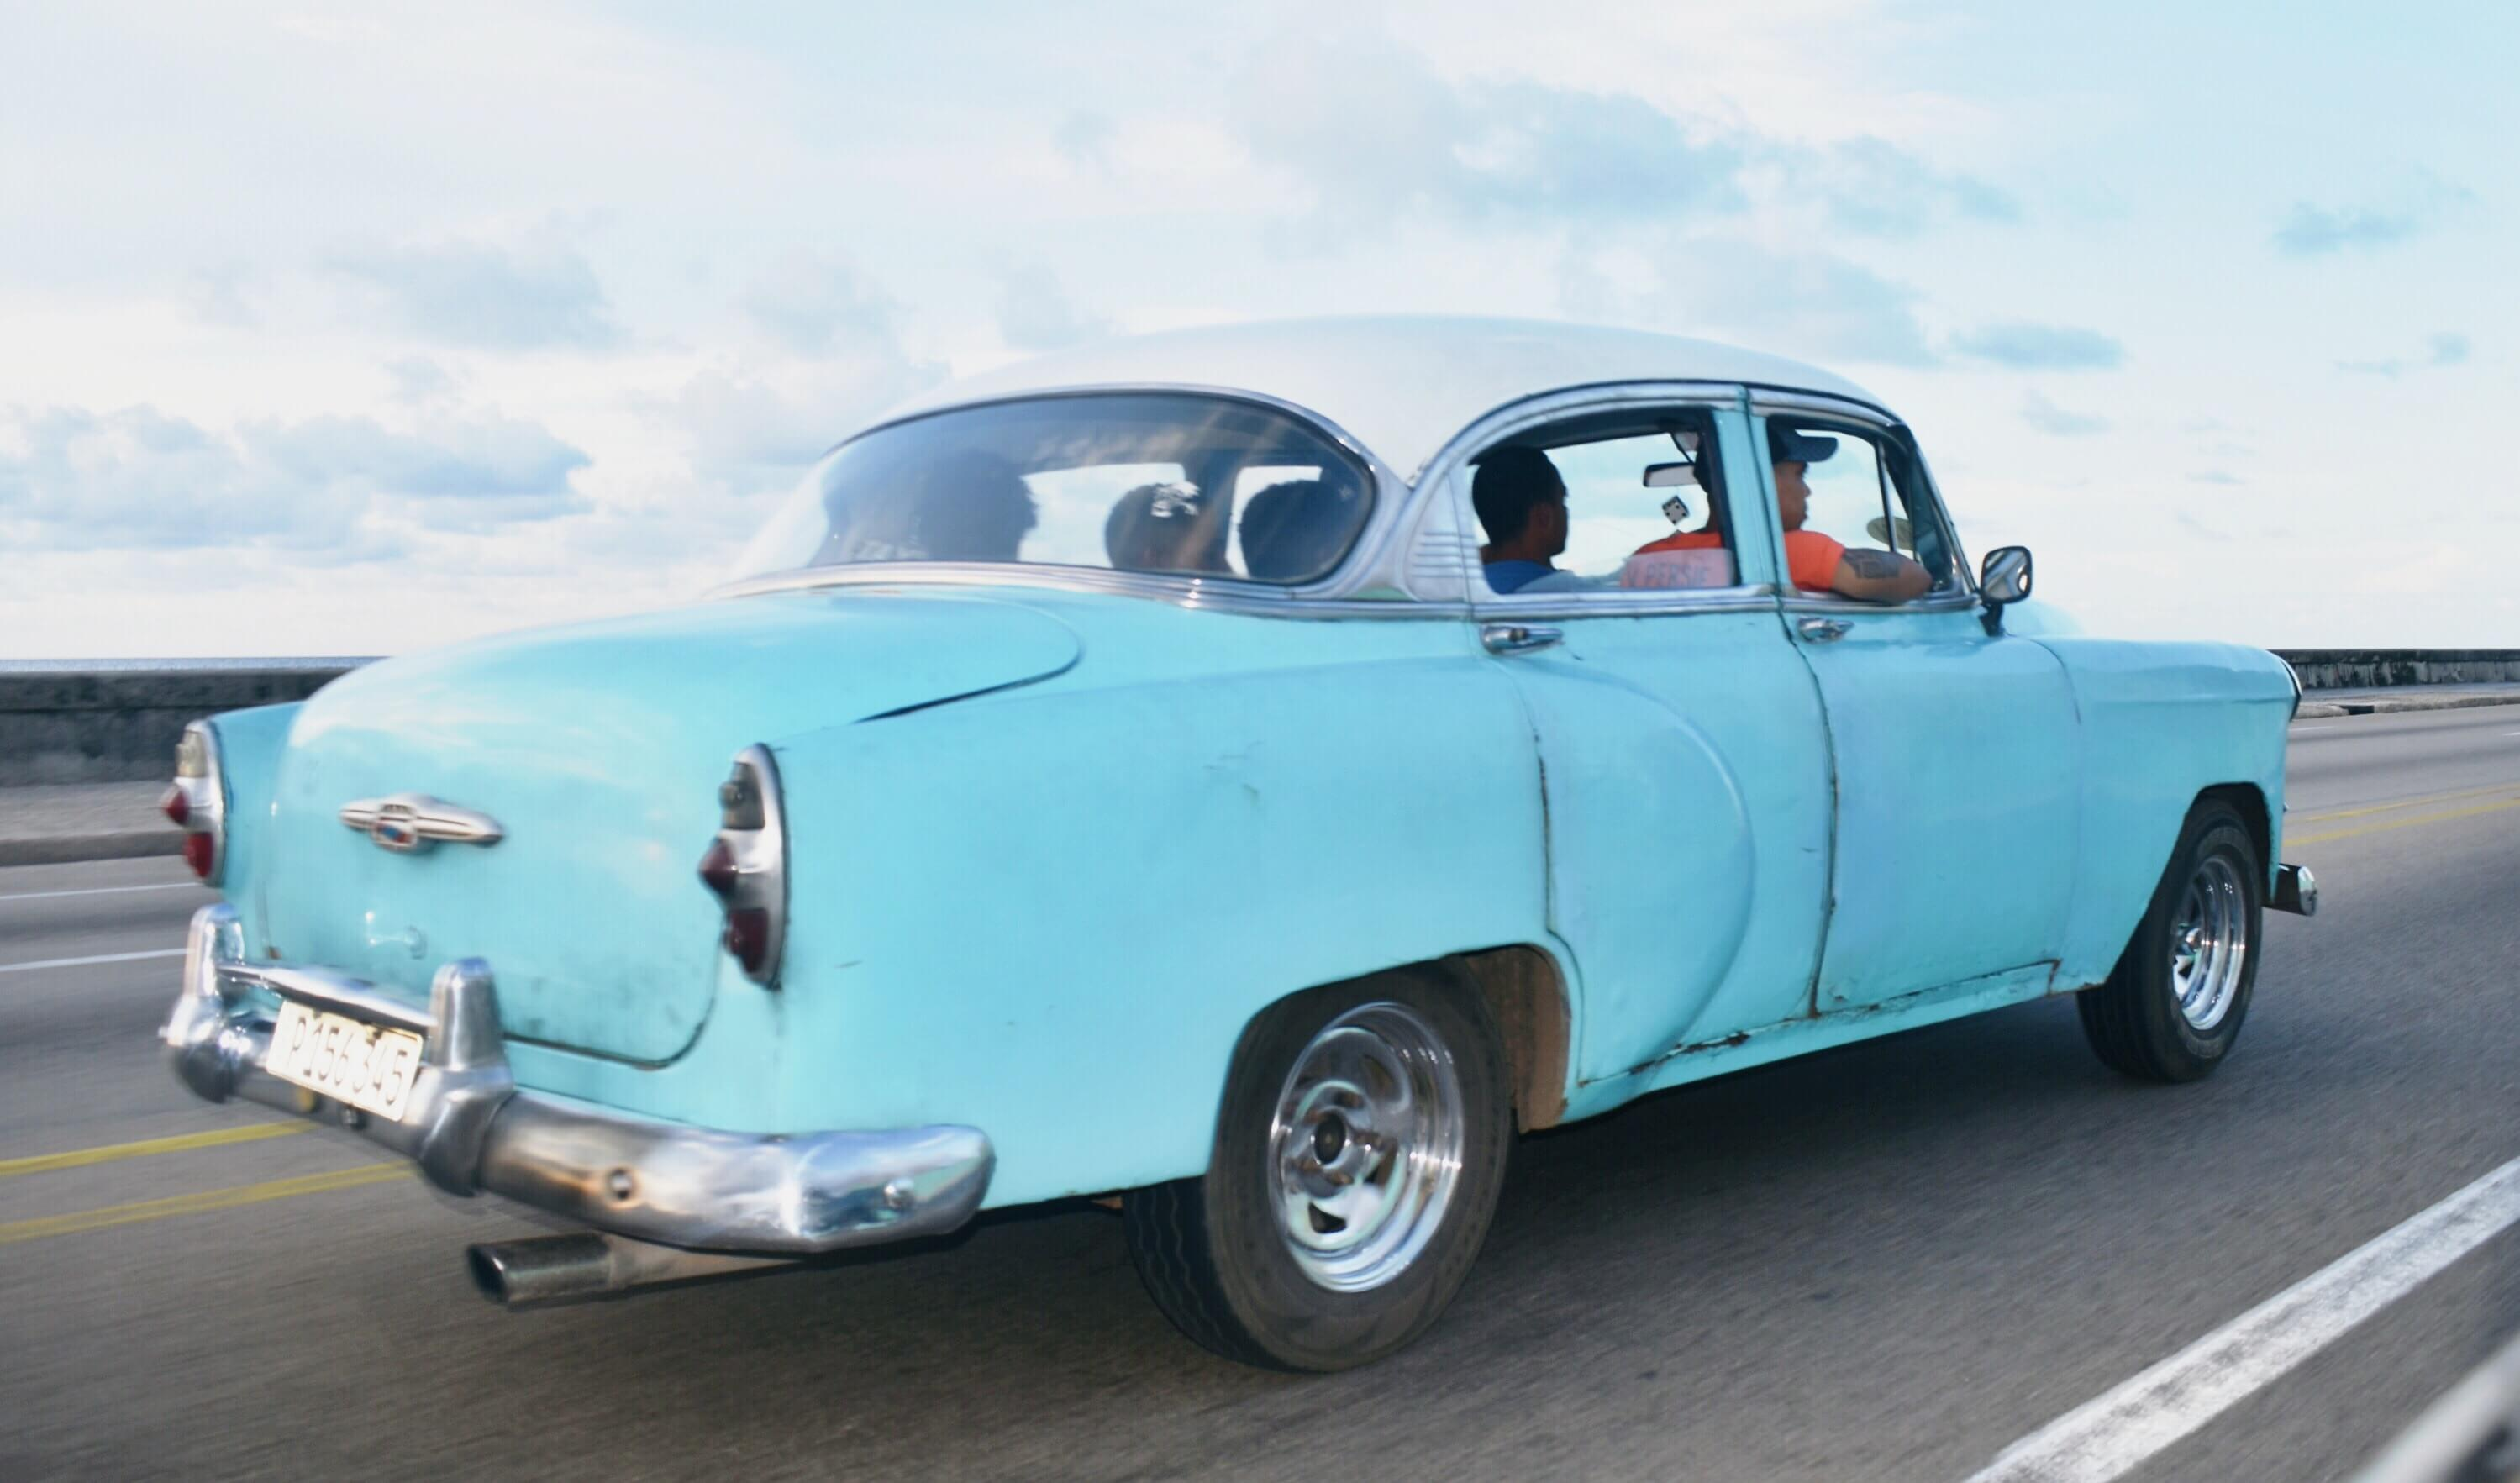 A blue classic car zips through Havana's El Malecon strip